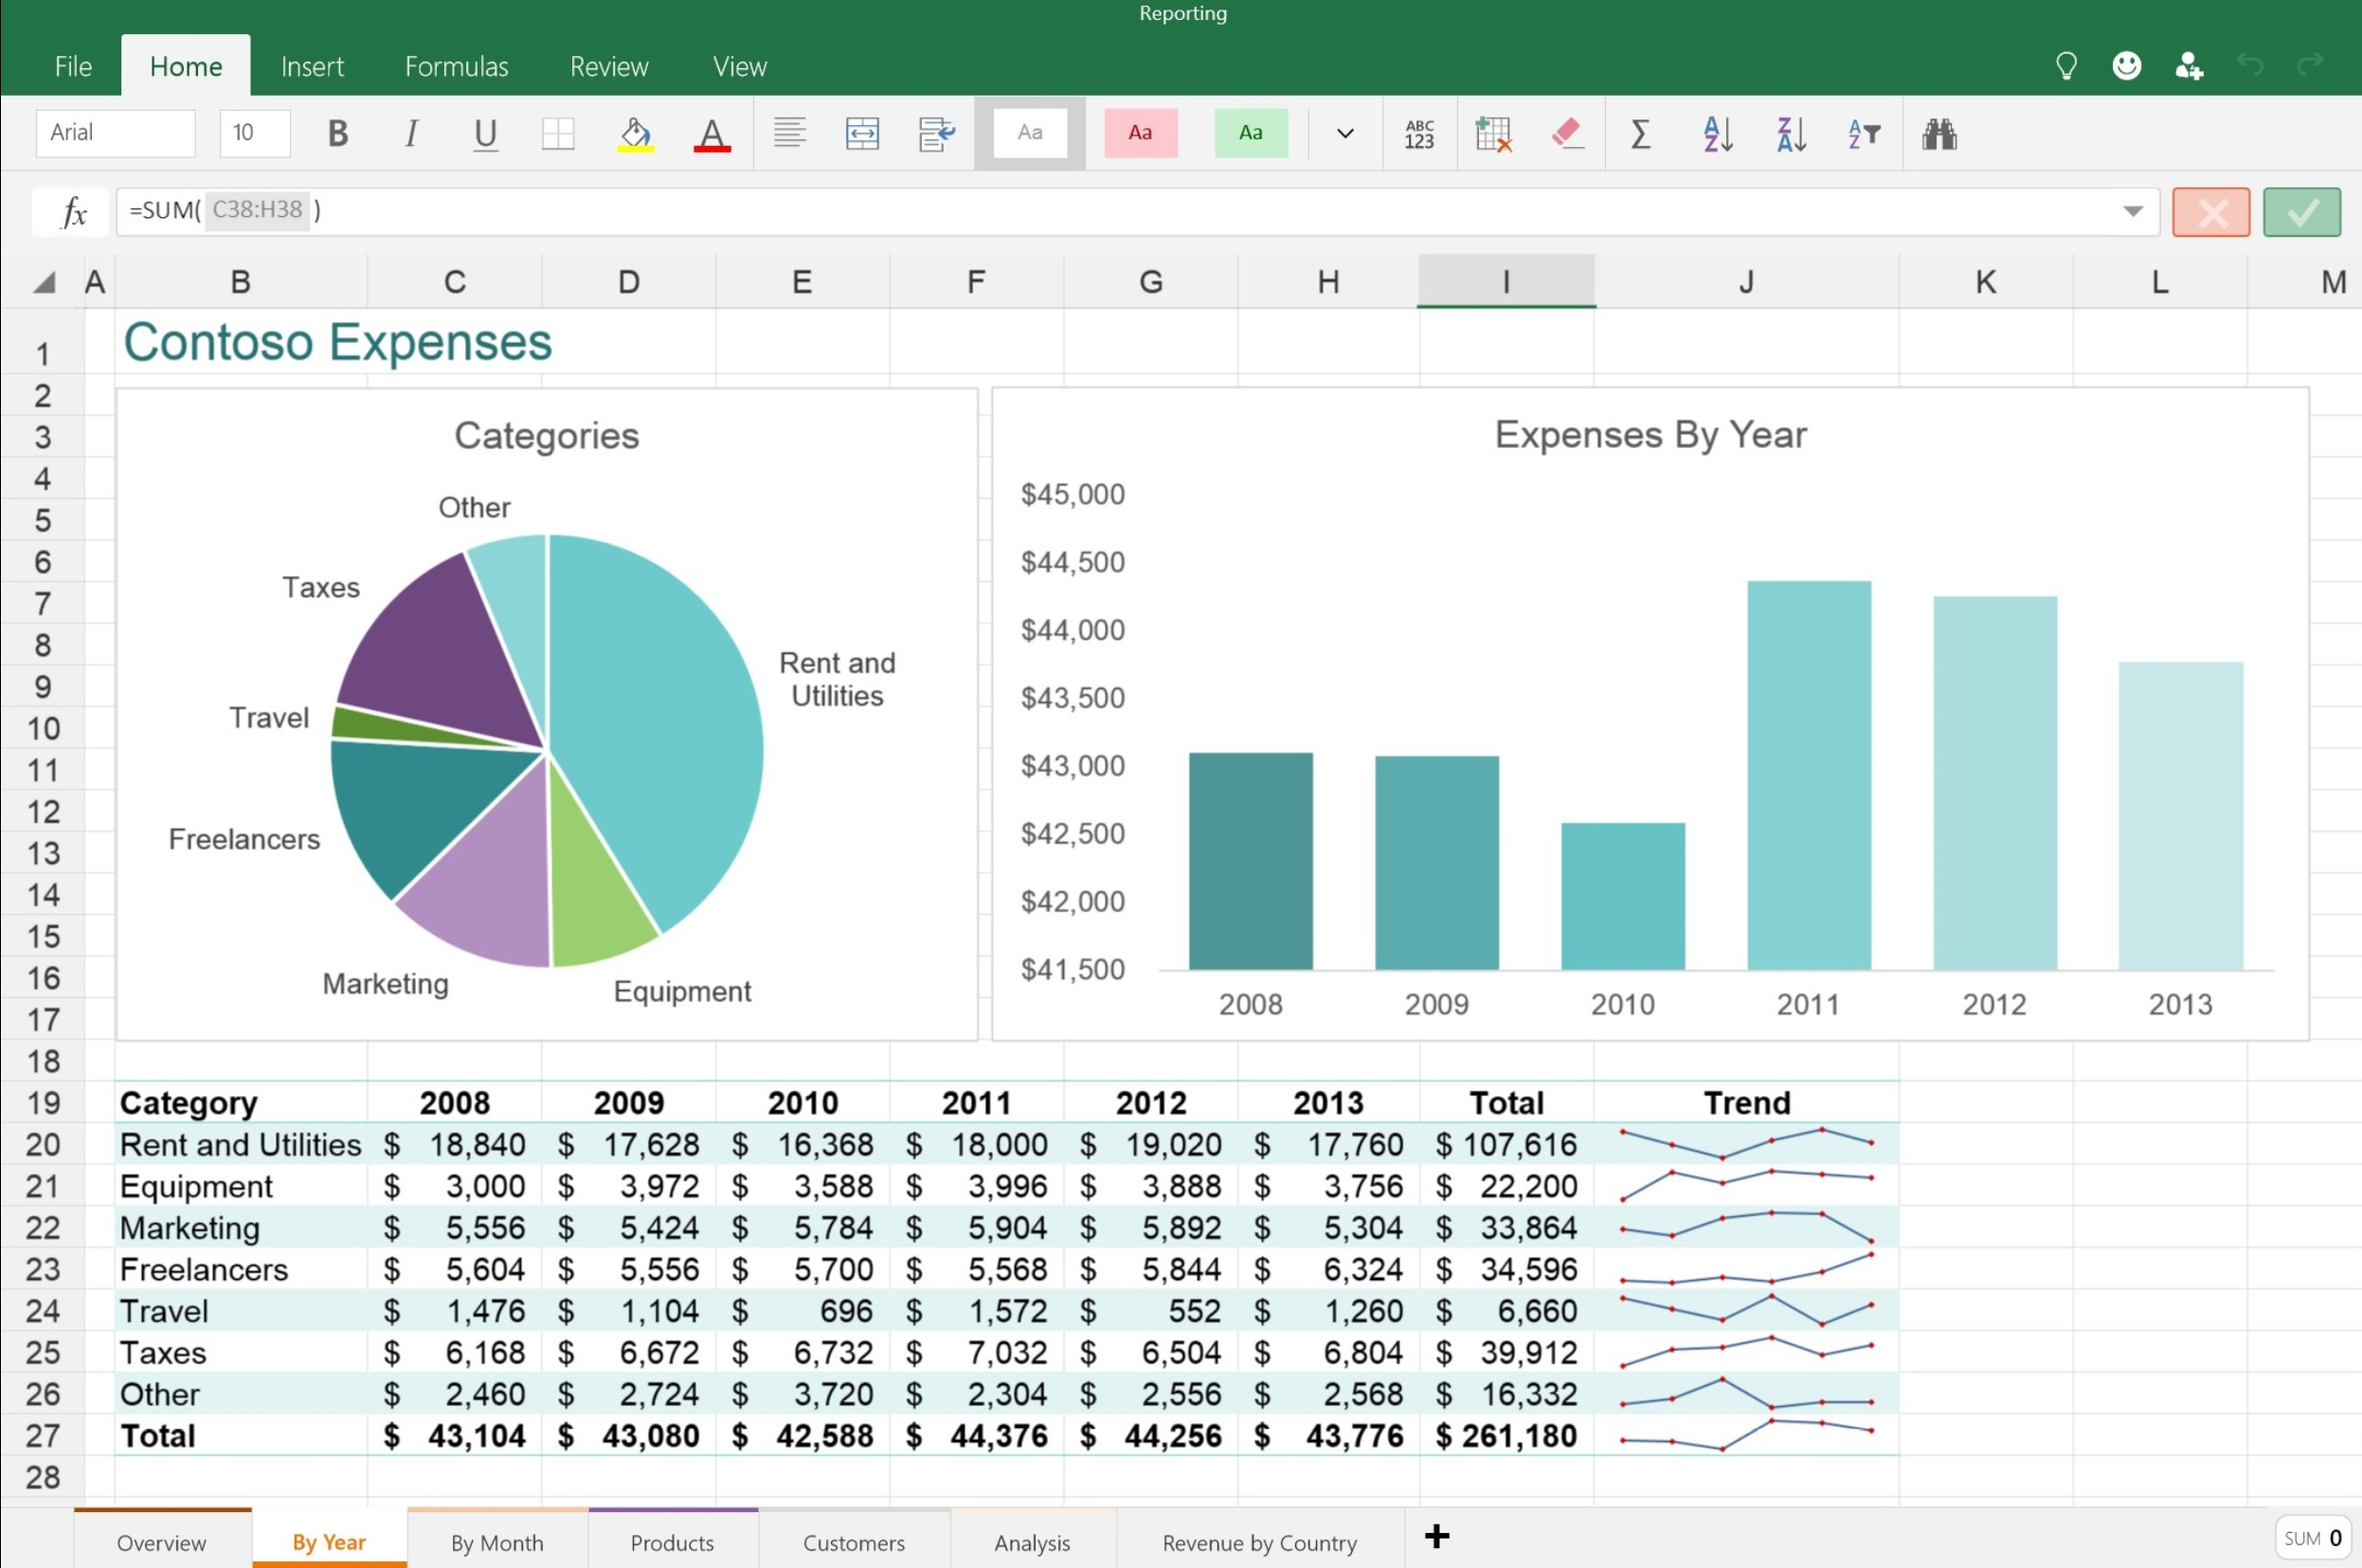 Ediblewildsus  Winsome Features Available In The New Word Excel And Powerpoint Apps For  With Engaging Excel Touch App  With Divine Excel Suffix Also How To Make An Excel Budget In Addition Excel Column Sum And How Do I Merge Two Columns In Excel As Well As Financial Modeling Excel Templates Additionally Lookup Formula In Excel From Mspowerusercom With Ediblewildsus  Engaging Features Available In The New Word Excel And Powerpoint Apps For  With Divine Excel Touch App  And Winsome Excel Suffix Also How To Make An Excel Budget In Addition Excel Column Sum From Mspowerusercom